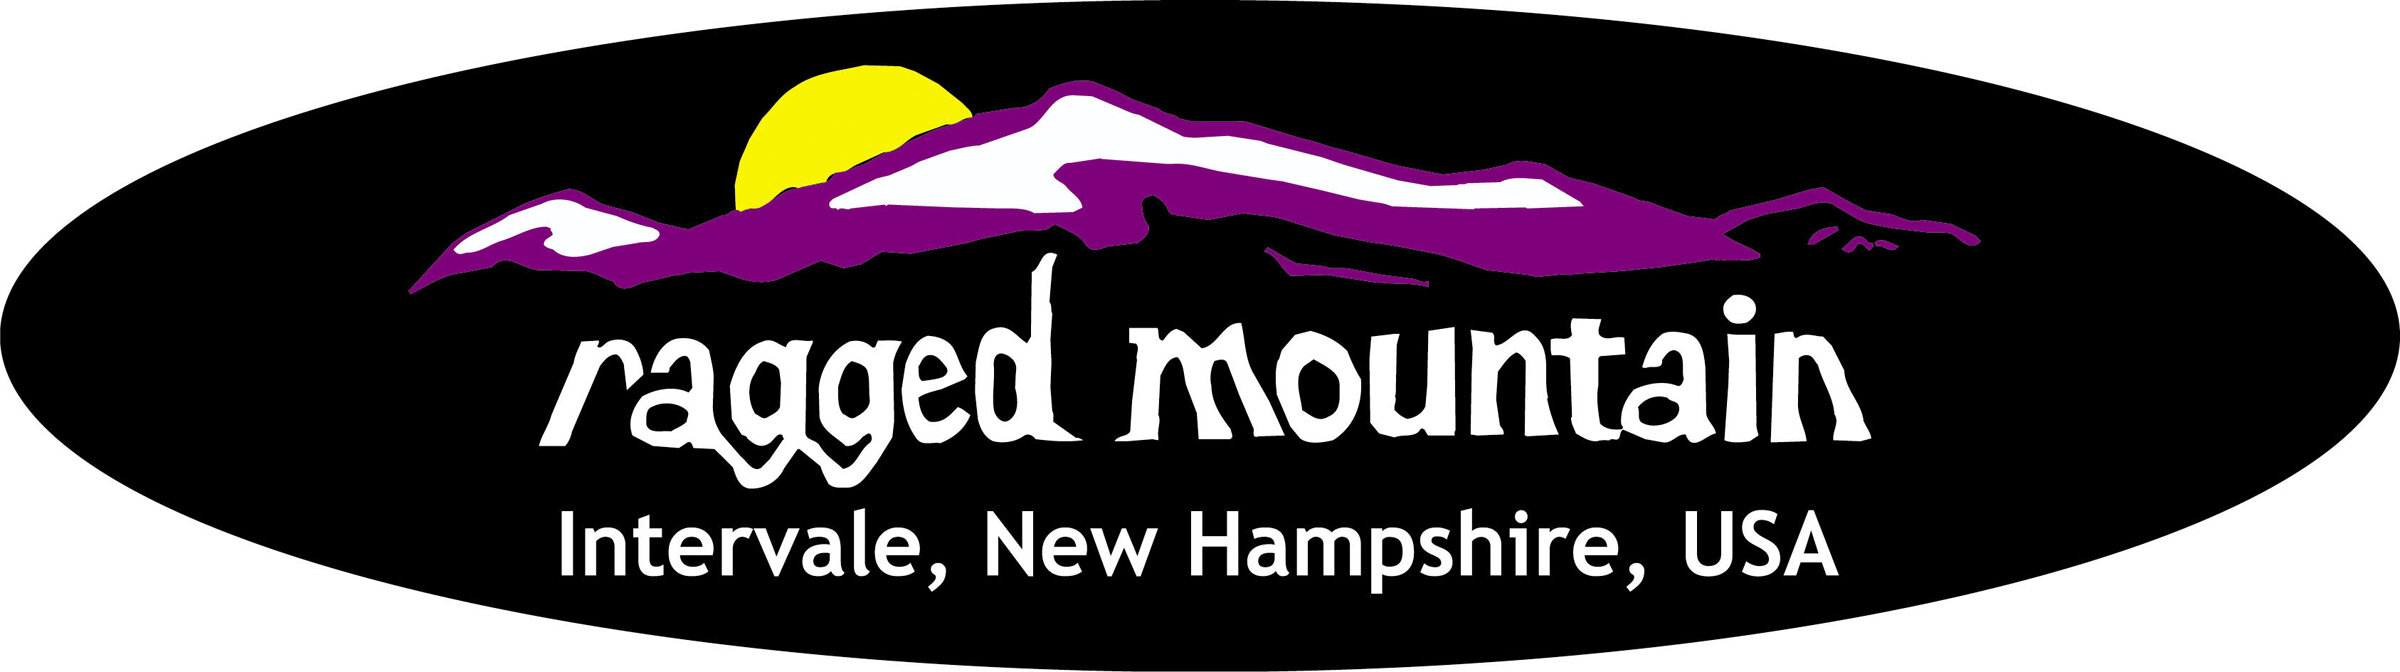 Ragged Mountain logo for BCA.jpg